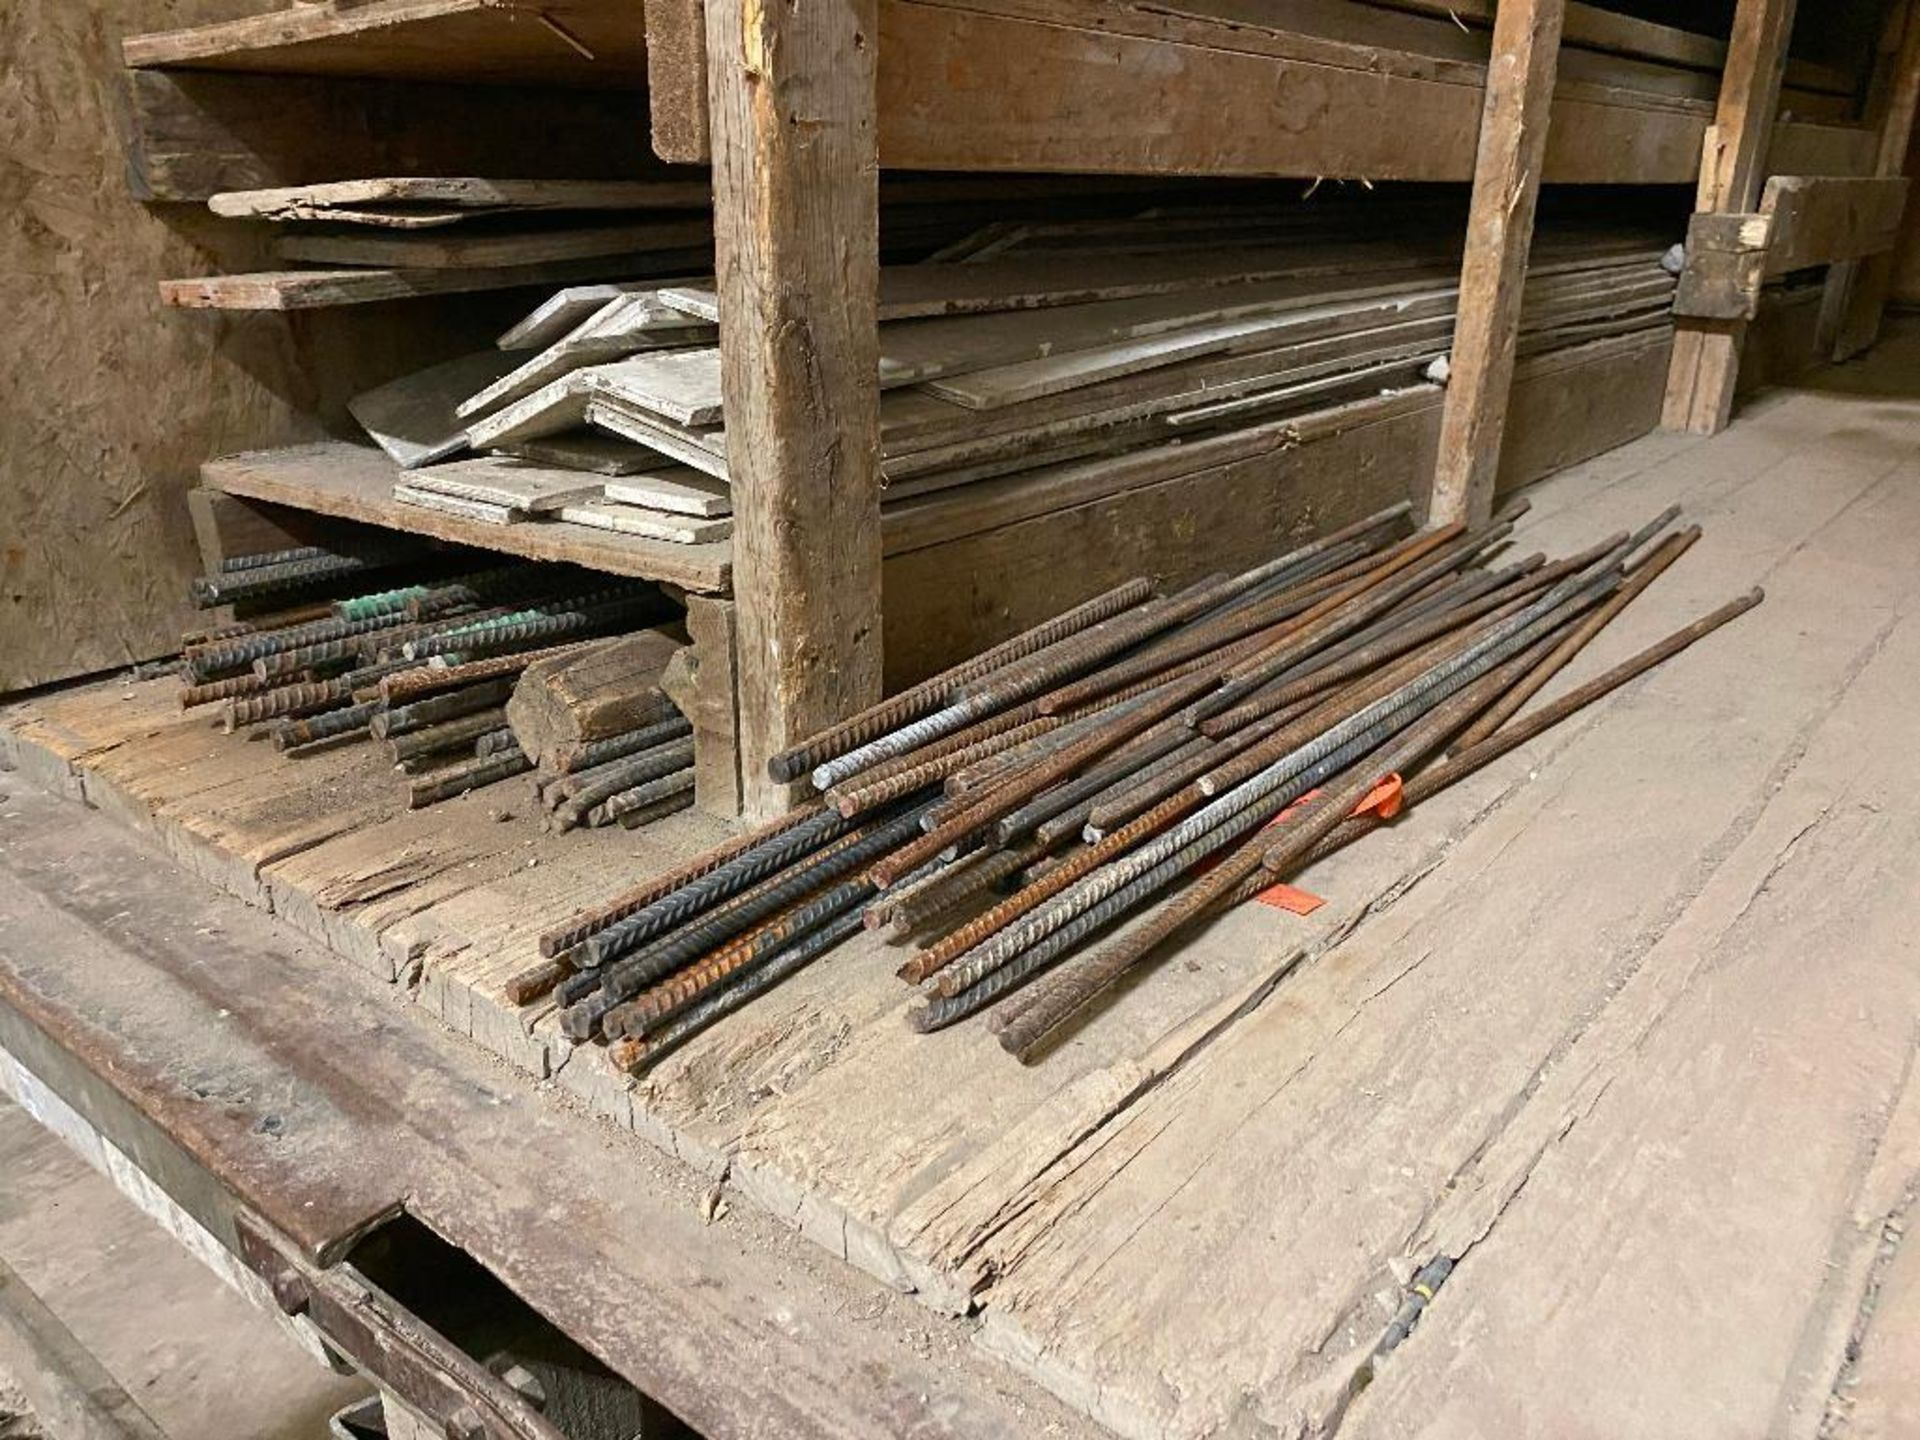 Lot of Asst. Form Lumber and Rebar - Image 2 of 4